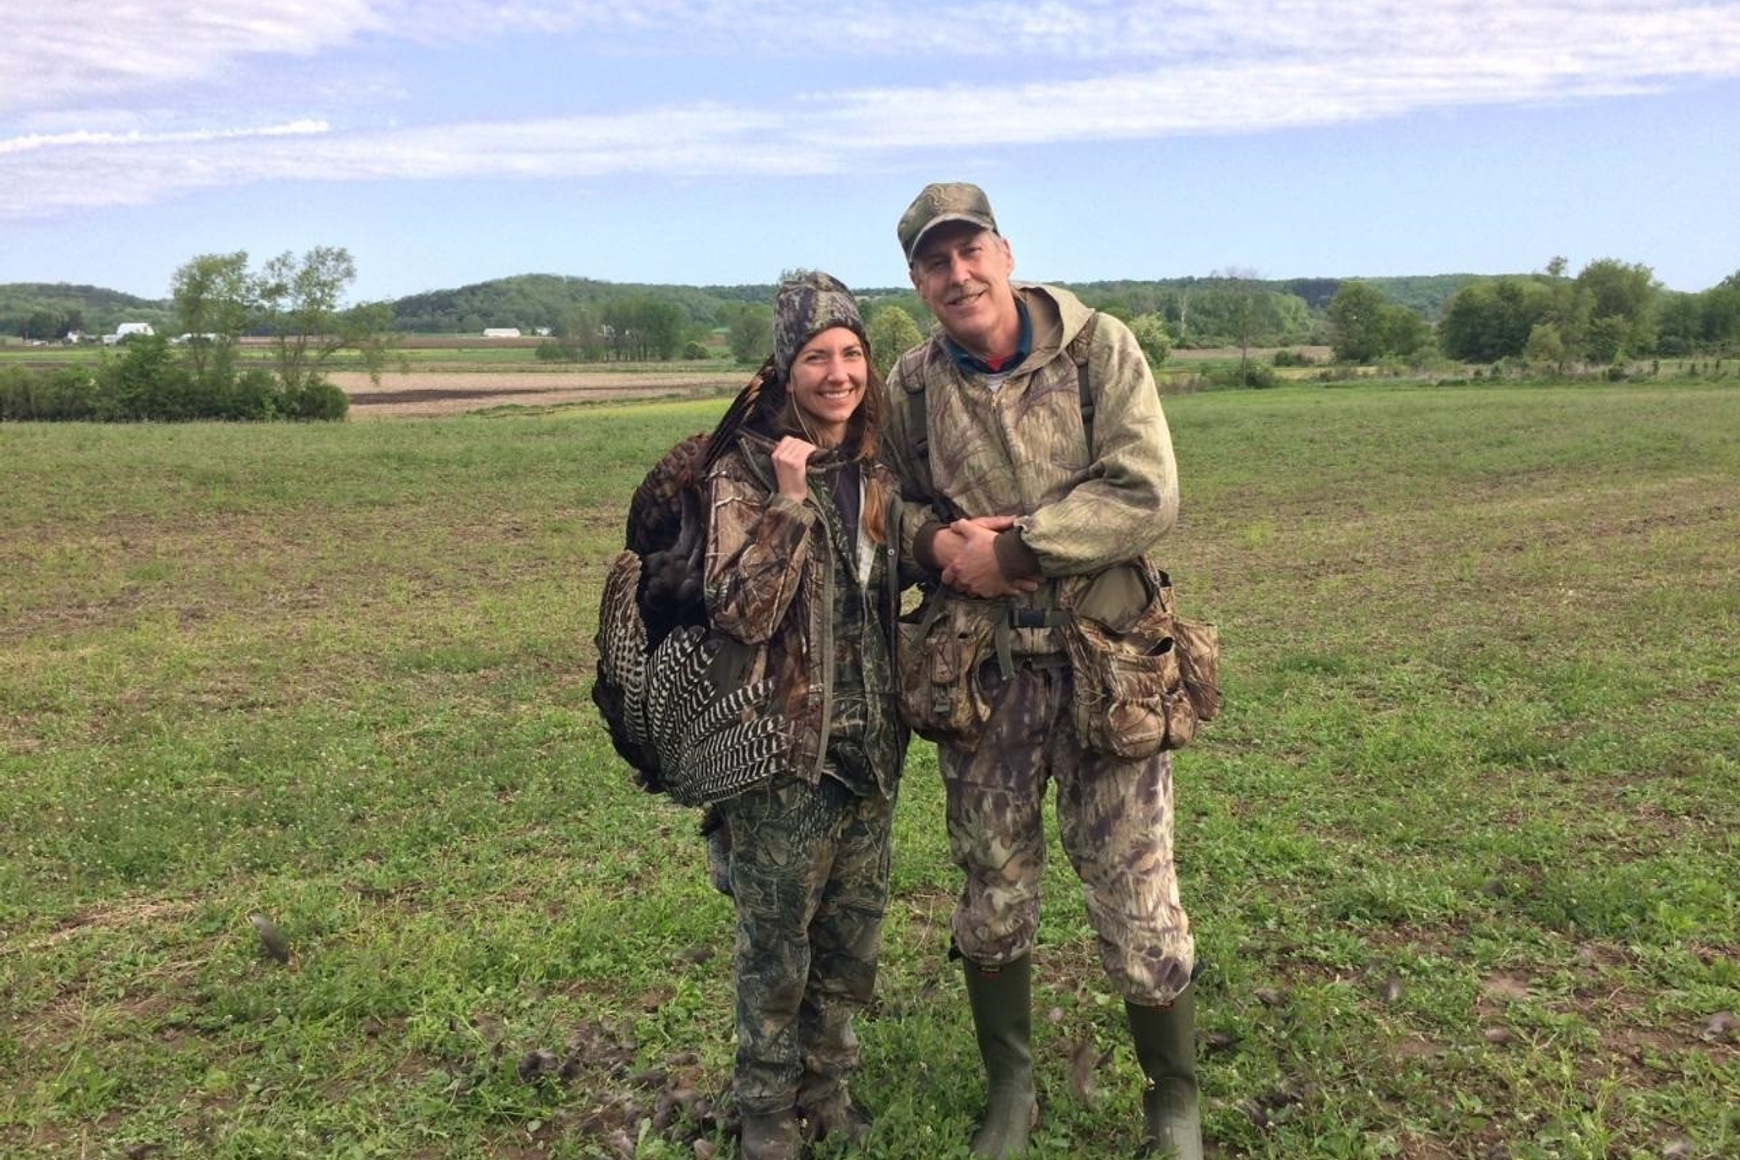 Two hunters in hunting clothing, standing in a field. Woman hunter on left carries a turkey she shot.